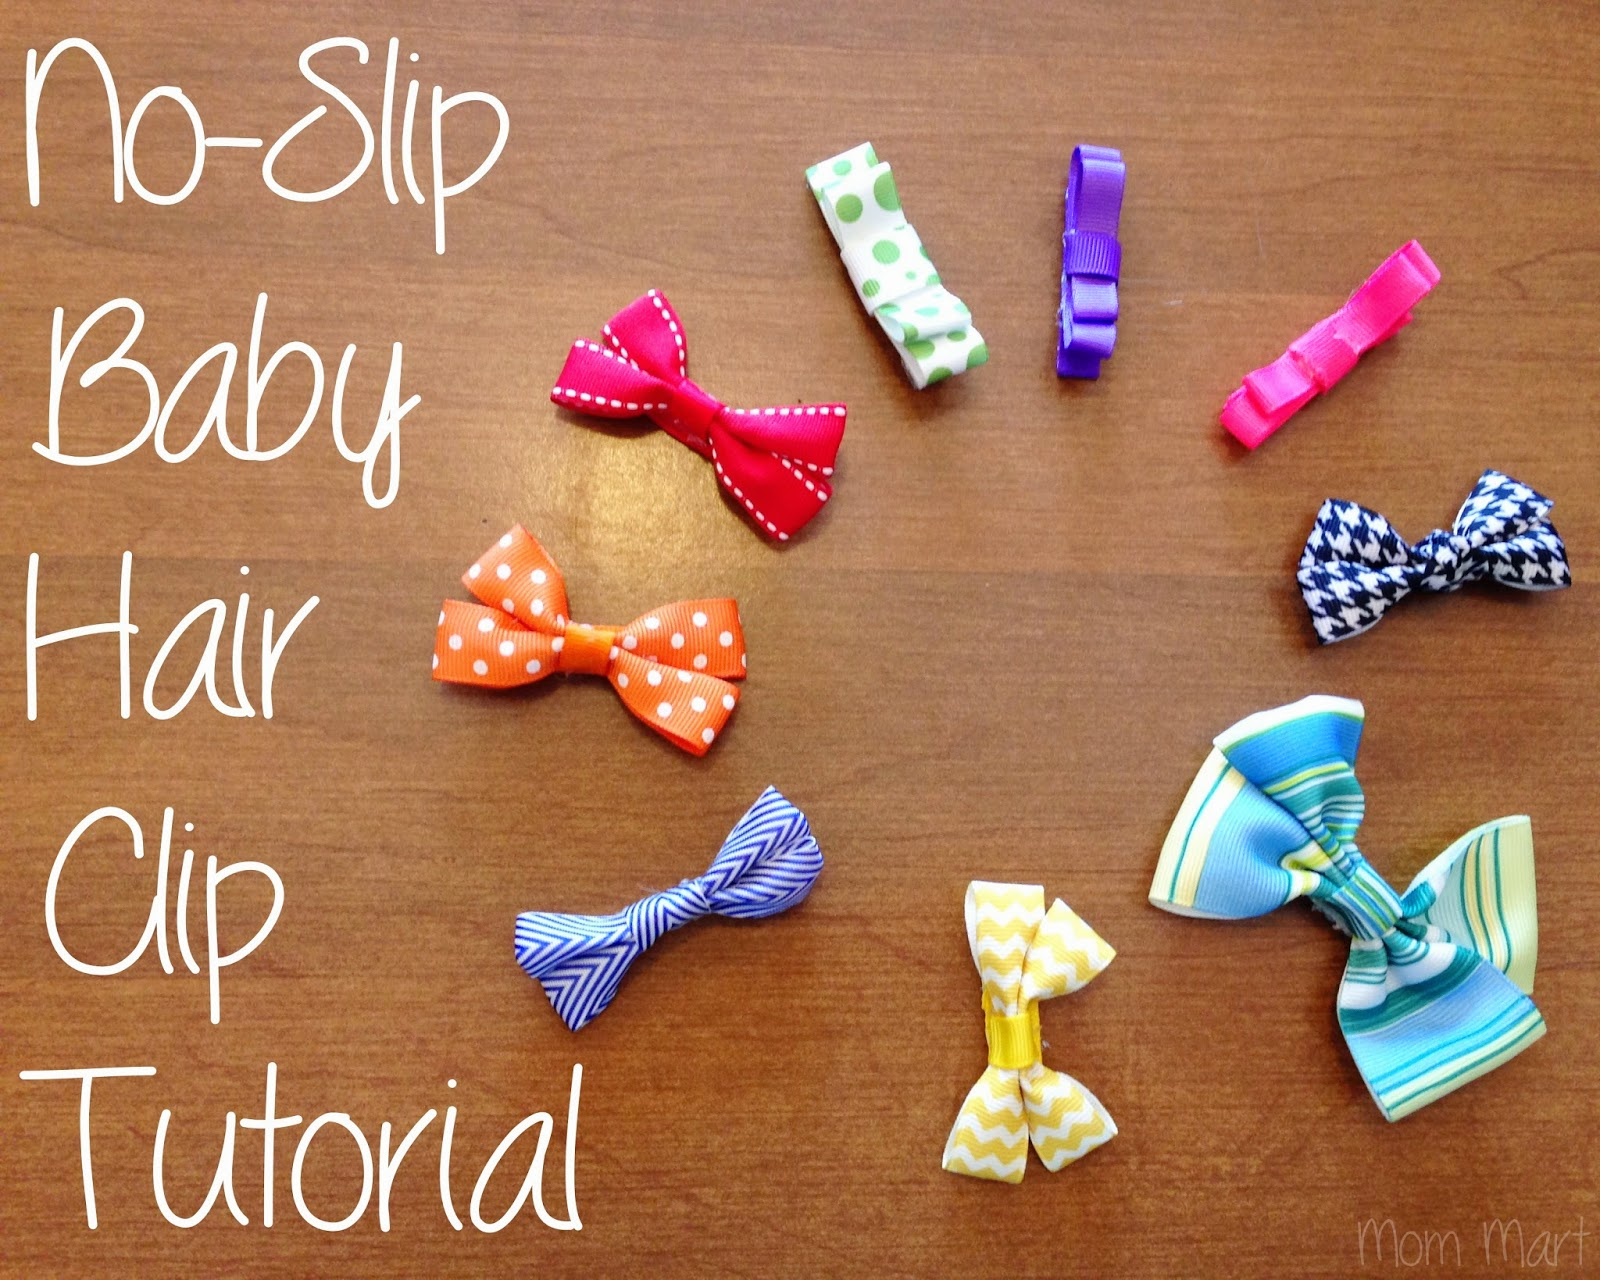 DIY baby hair clips with a no-slip grip, #DIY #Tutorial #Homemade #HairBow